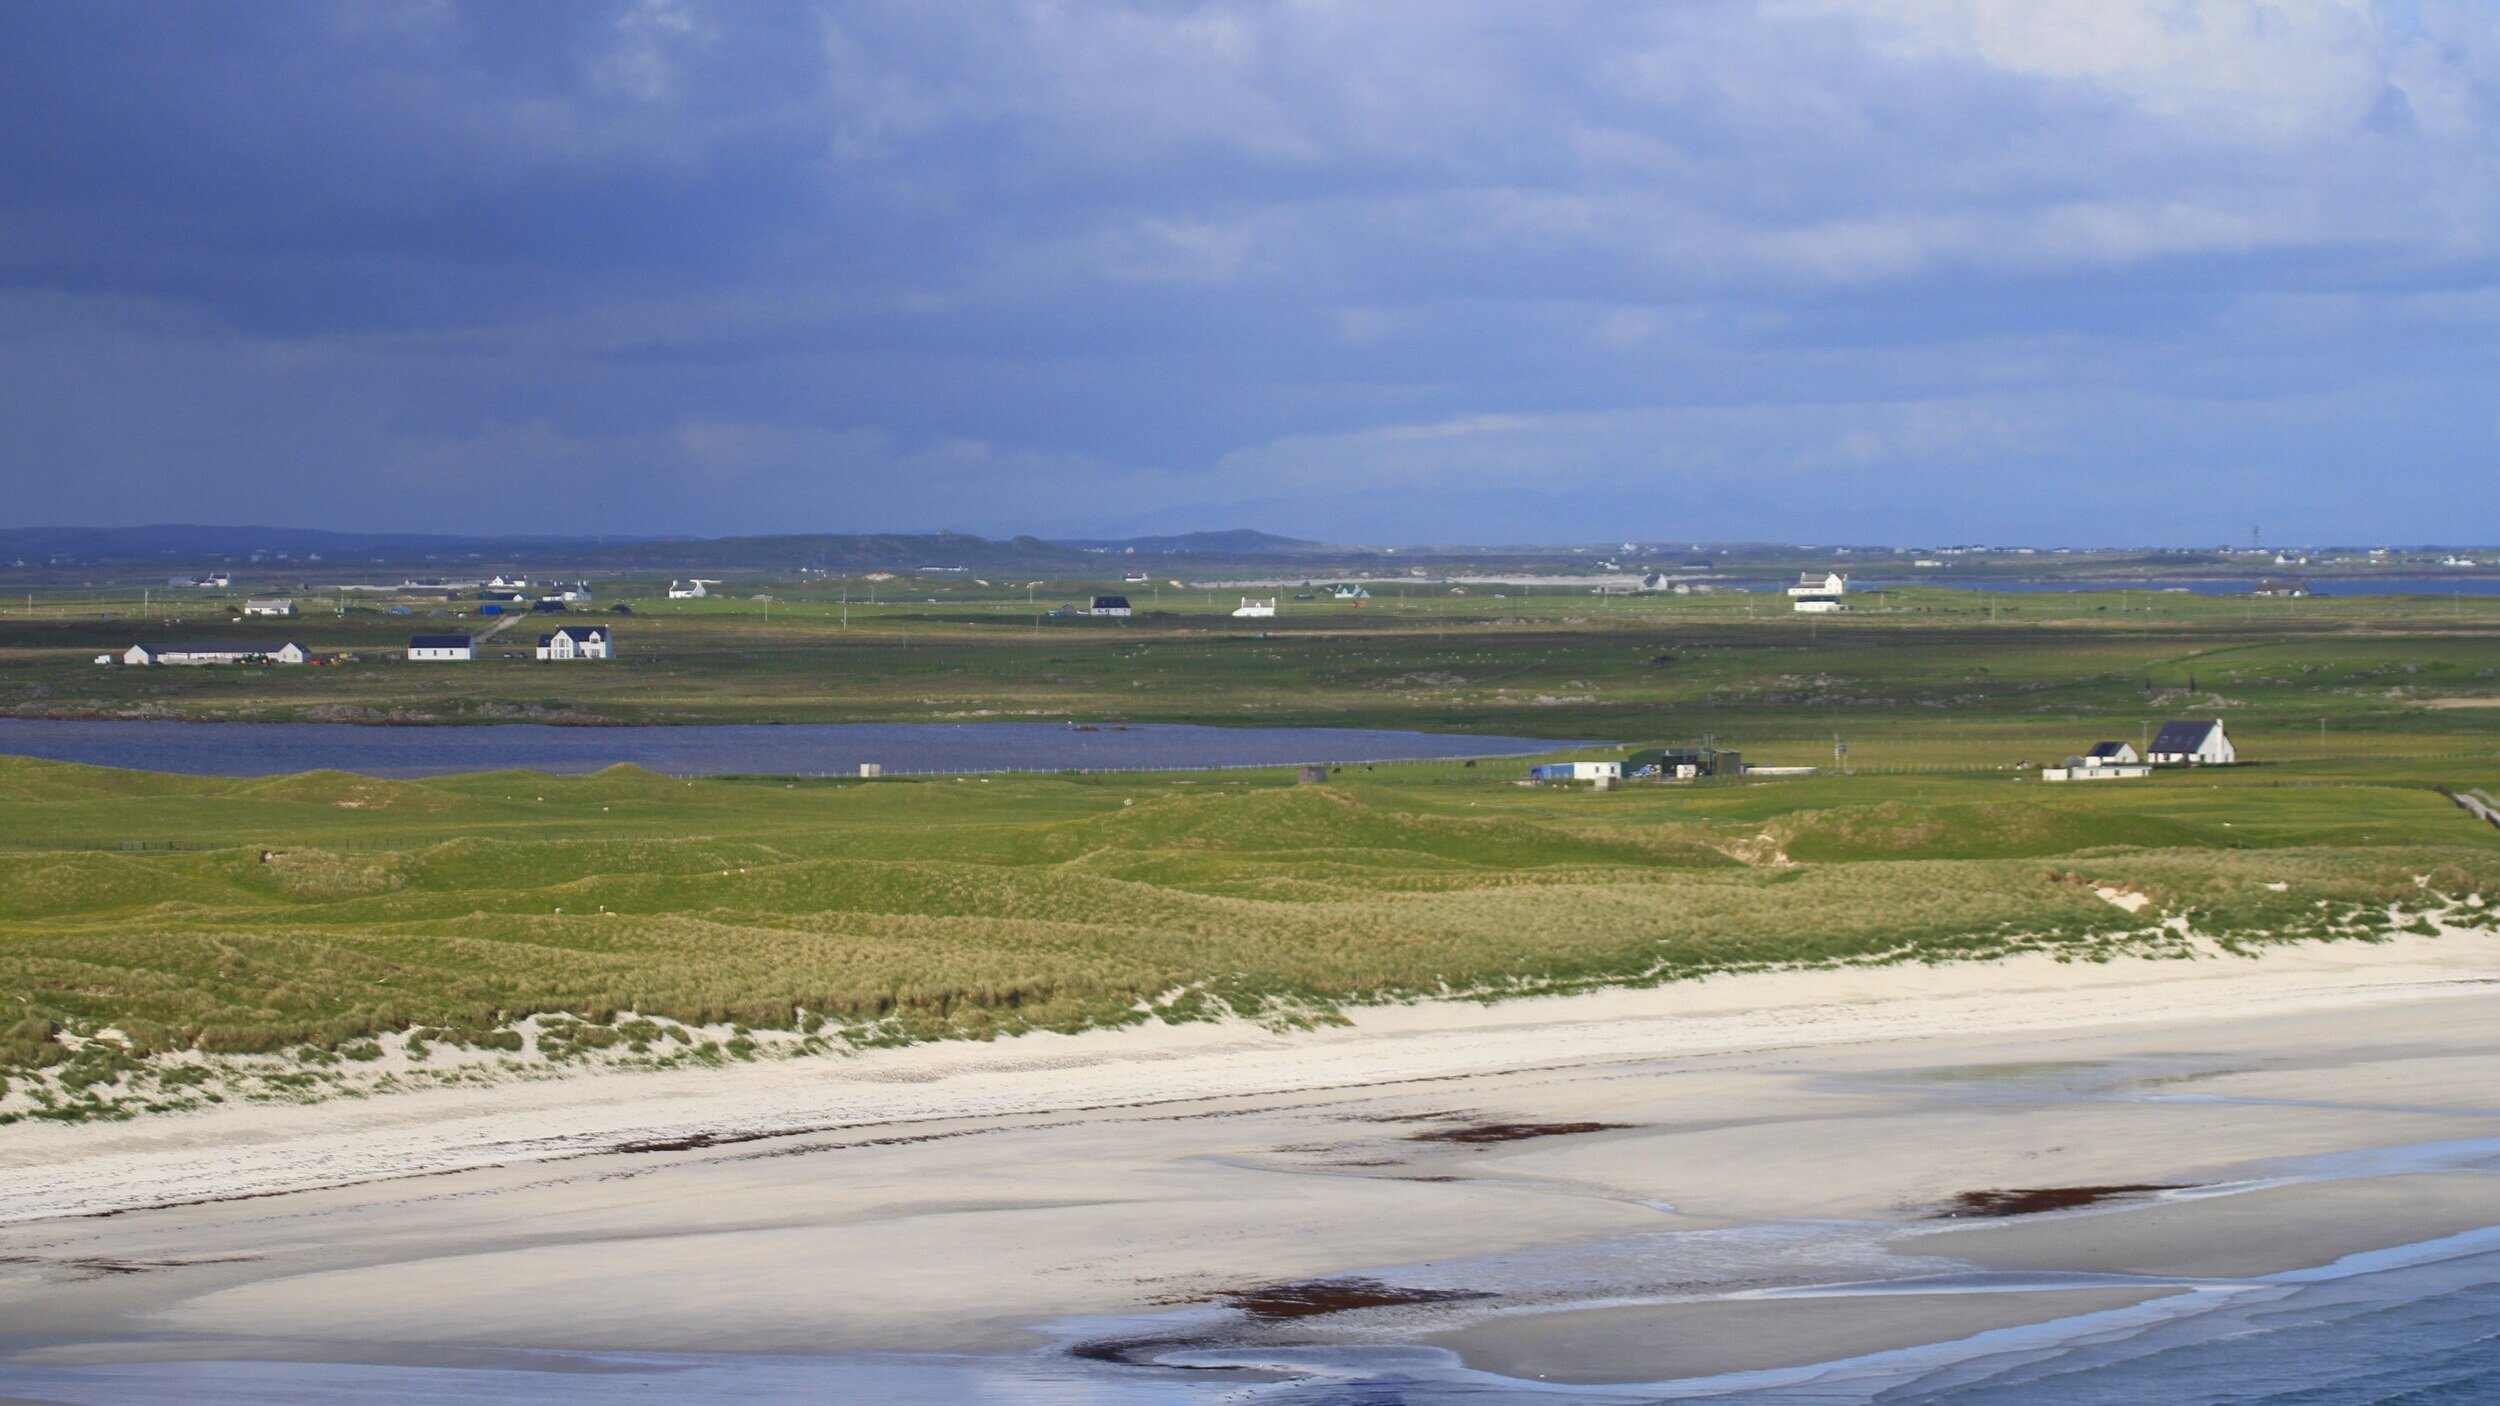 Looking east across Traigh Bhi, you can see sand-blow through the dunes.